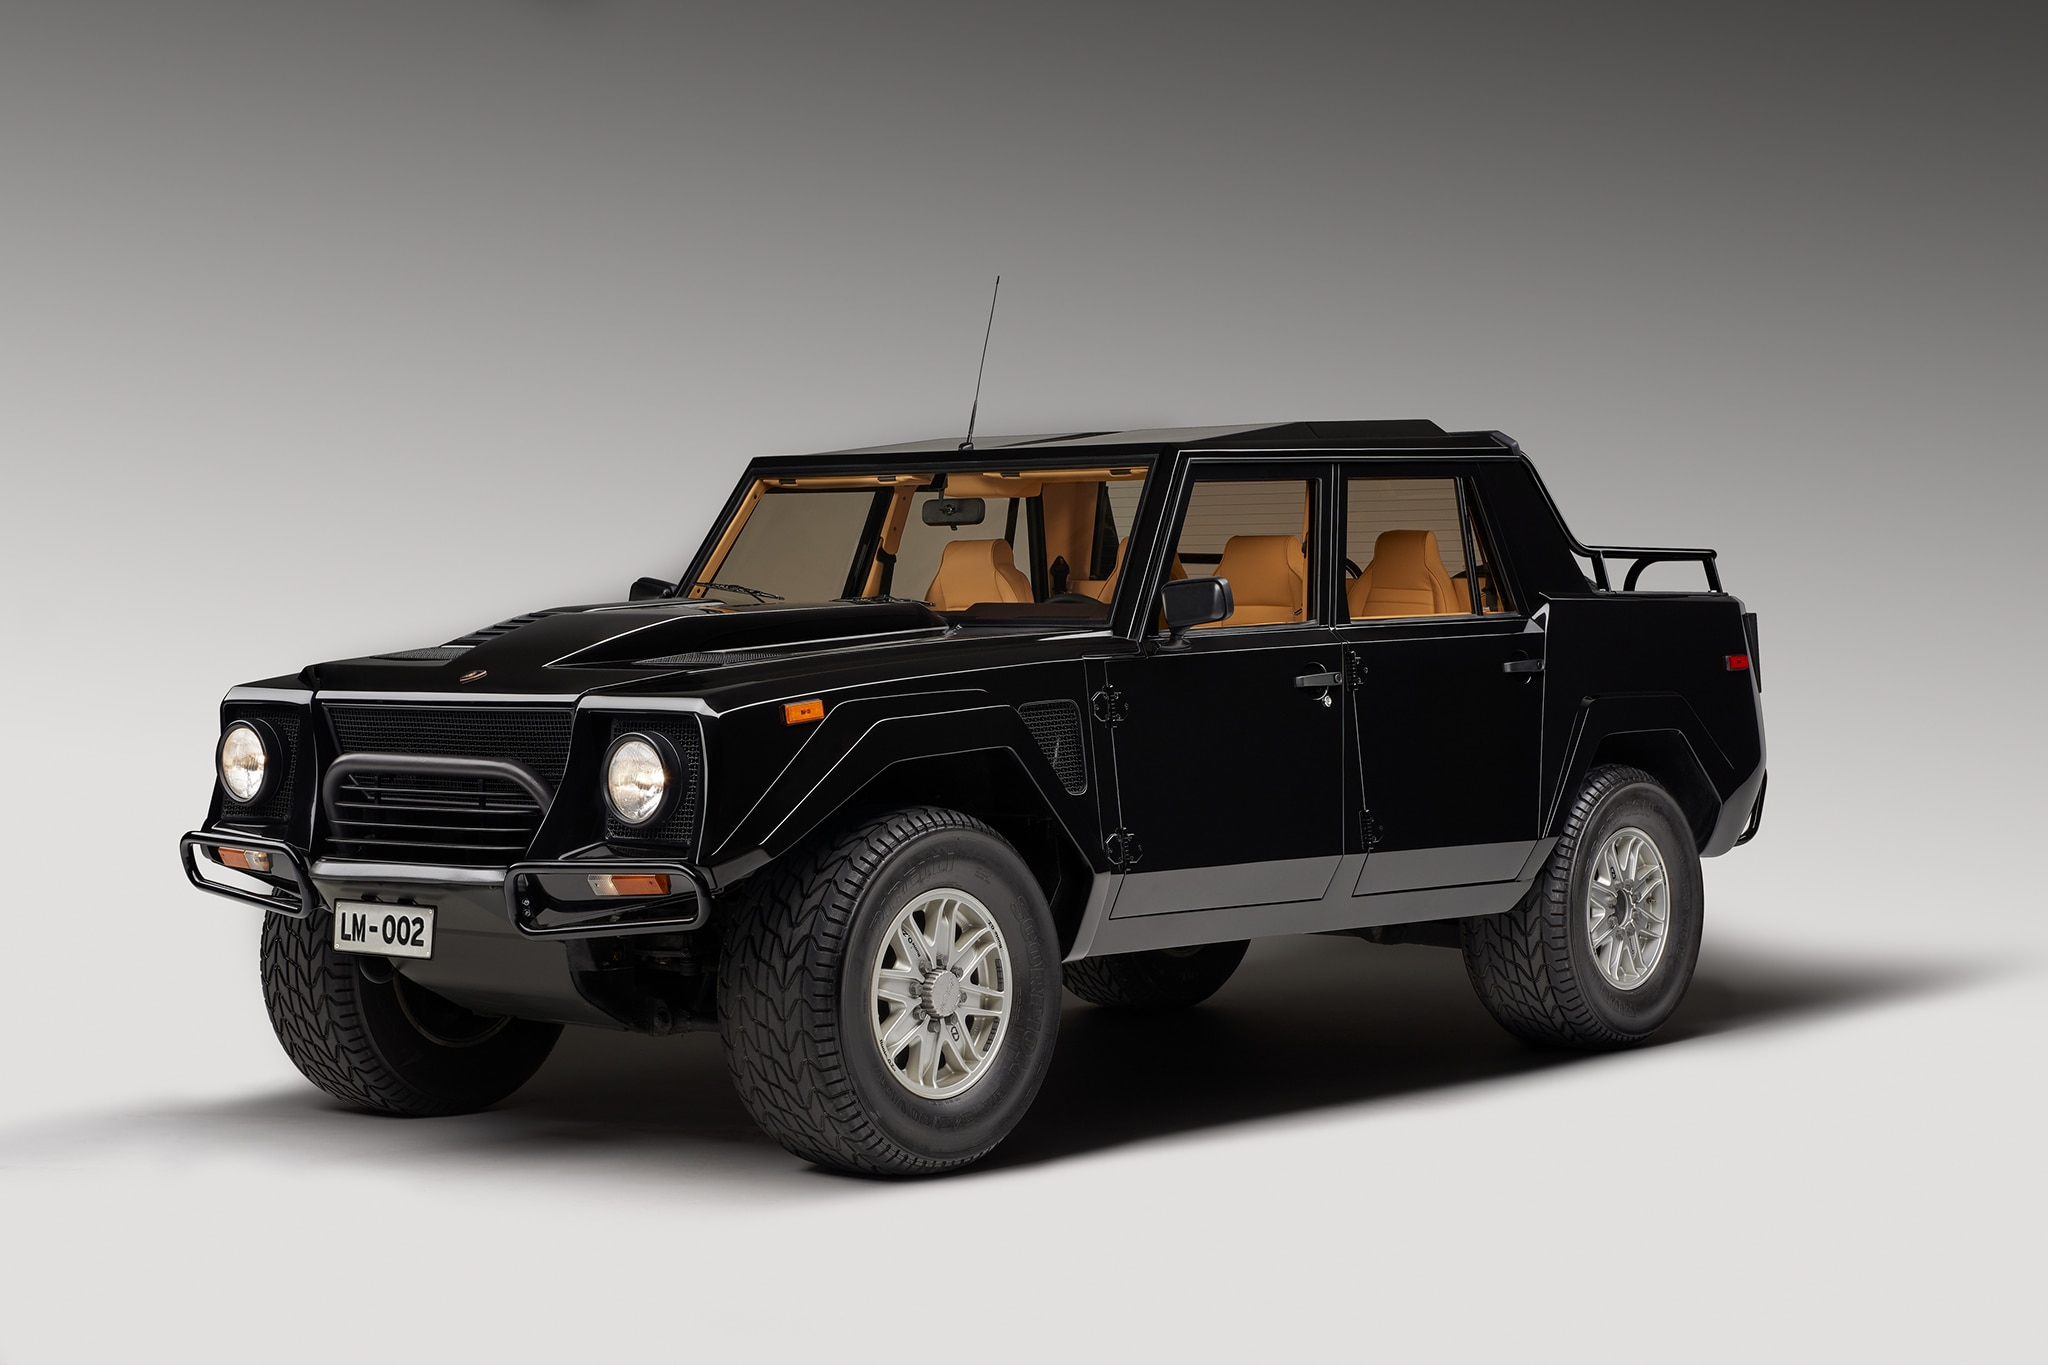 Price Of 2017 Lamborghini >> 1986-1993 Lamborghini LM002 - Luxury SUV Review - Automobile Magazine